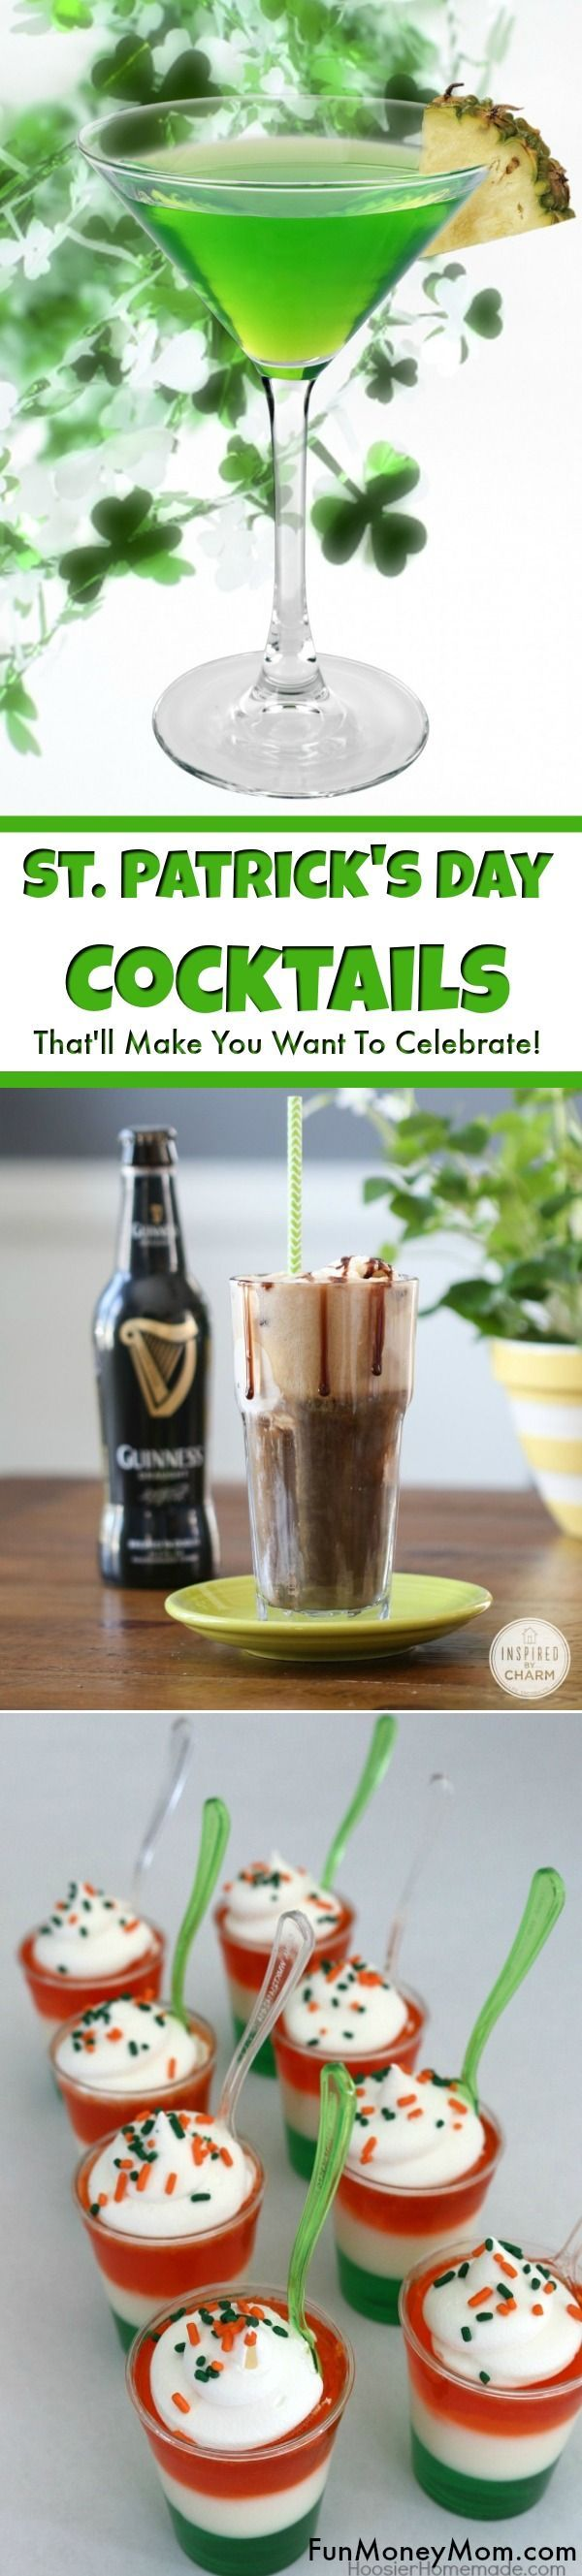 St. Patrick's Day Cocktails - Need cocktail ideas for St. Patrick's Day? These green drinks will make you want to celebrate! After all, St. Patrick's Day drinks are the best holiday cocktails of the year! #stpatricksday #cocktails #greendrinks